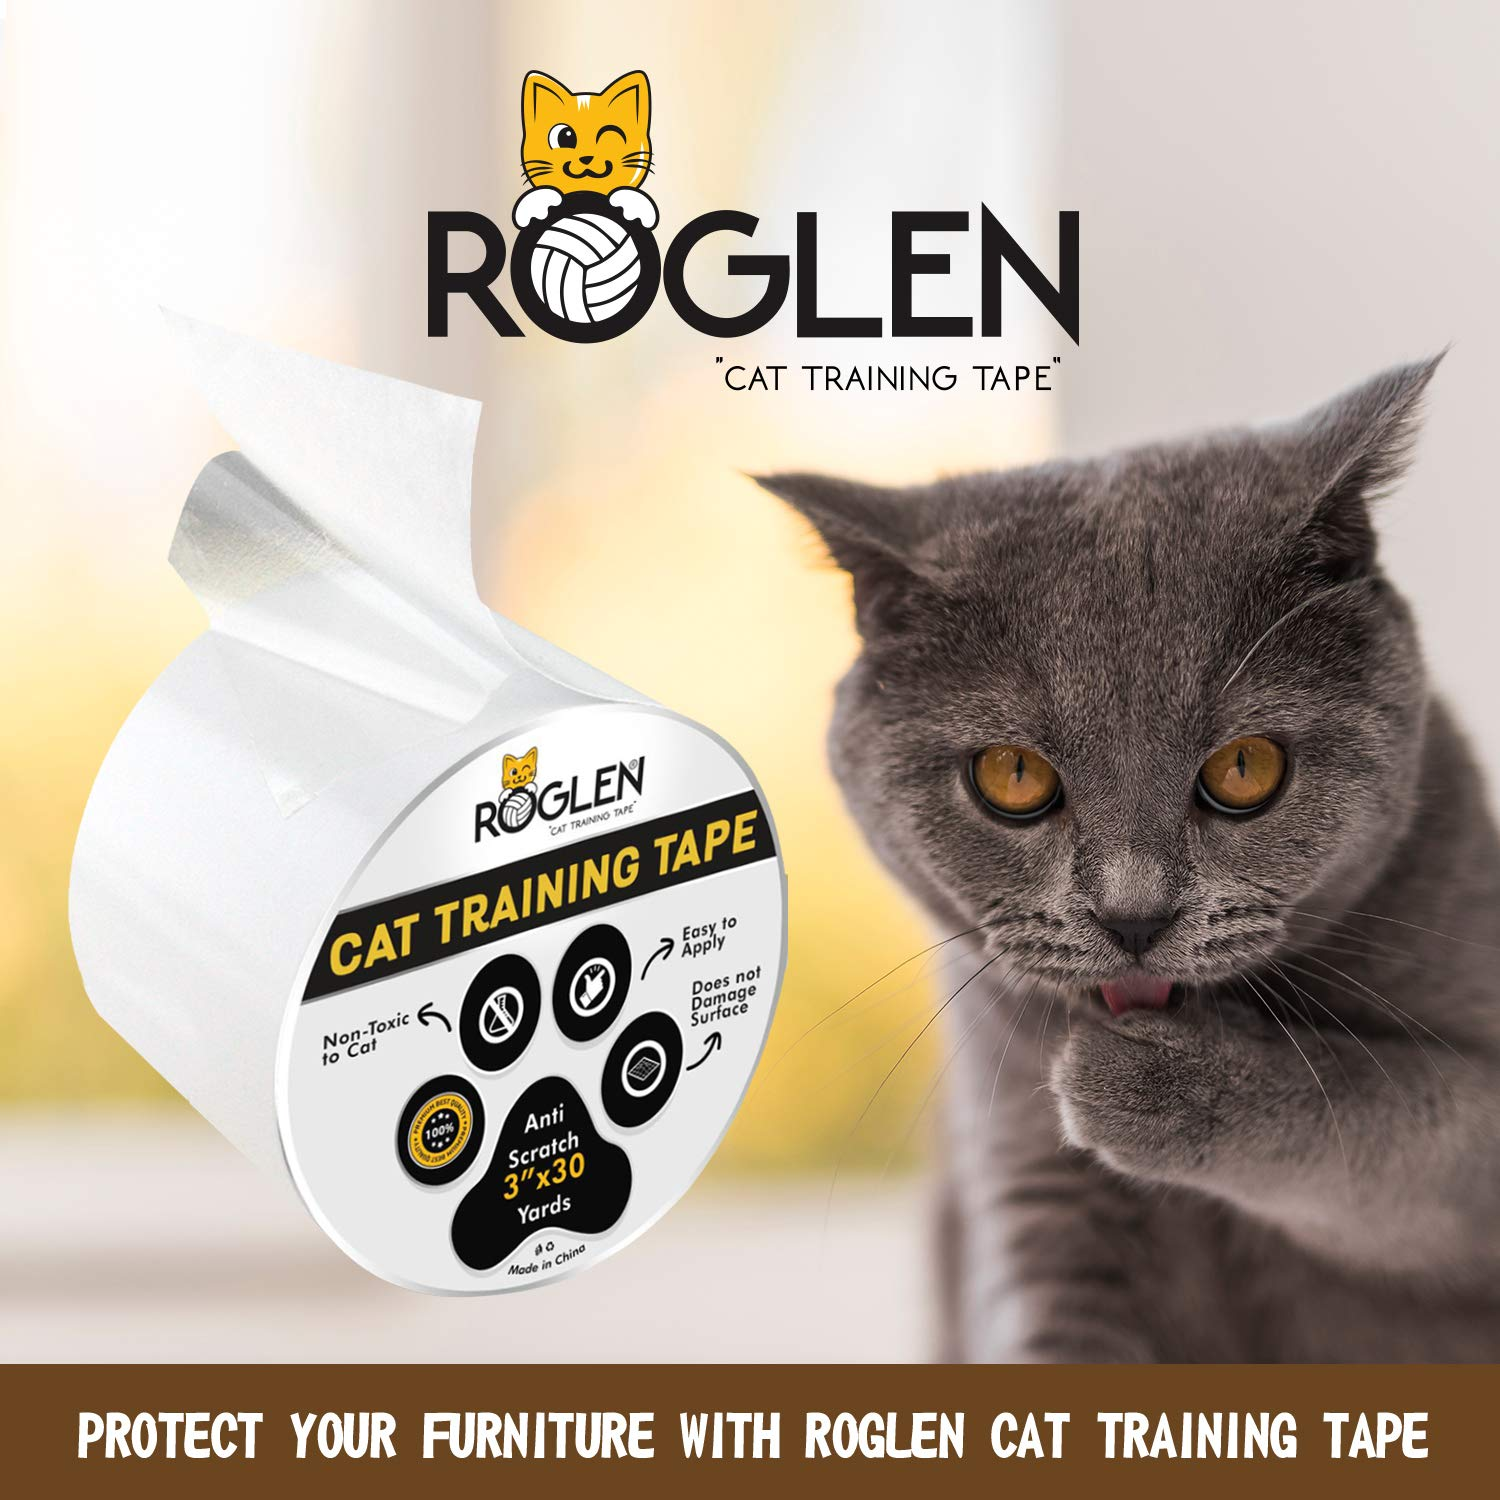 Prevent Scratching Double-Sided Sticky Adhesive Kittens Damage Furniture /& Fabric Protection Roglen Cat Tape Anti-Scratch Training Deterrent 3 Inches x 30 Yards Clear Adults